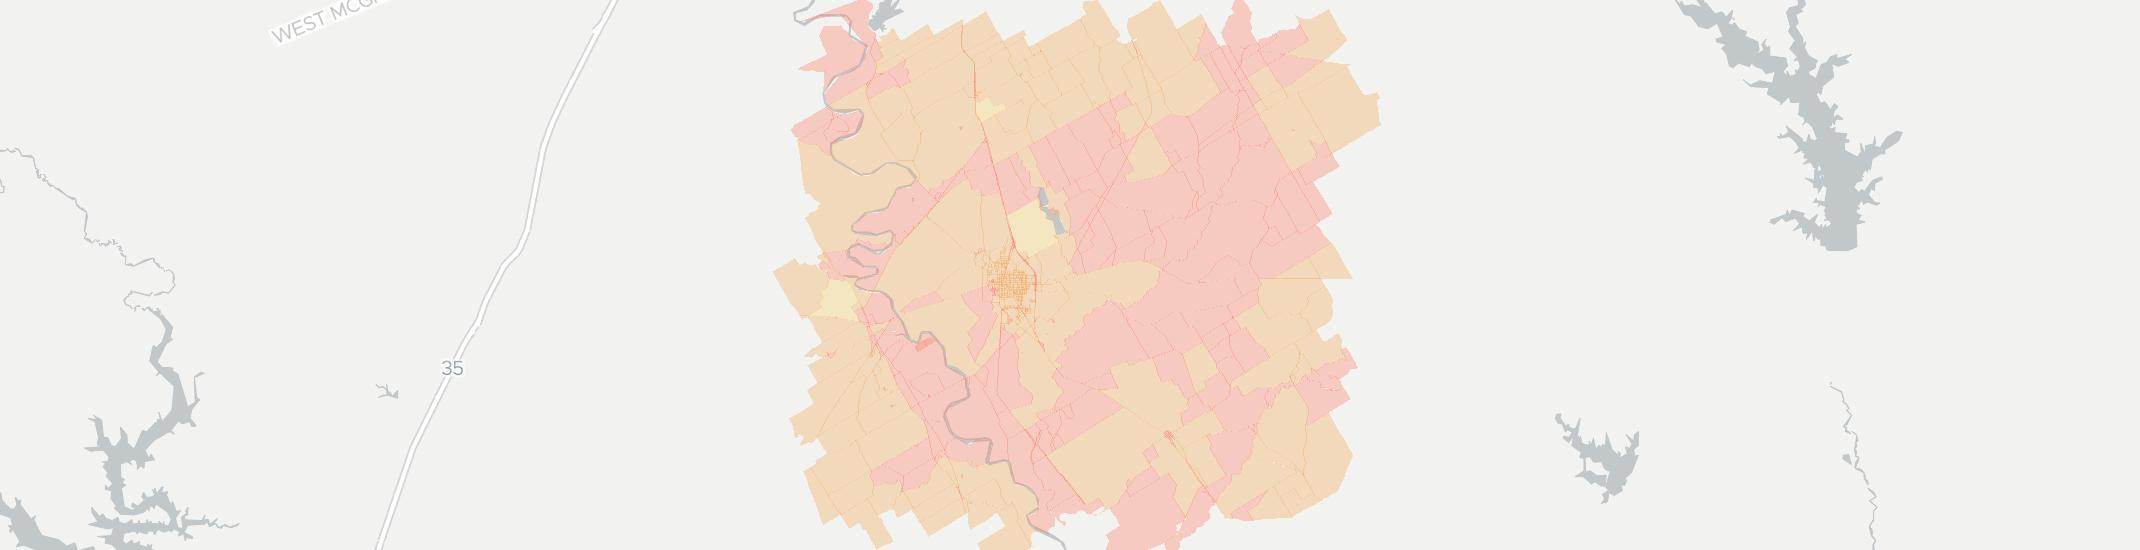 Marlin Internet Competition Map. Click for interactive map.